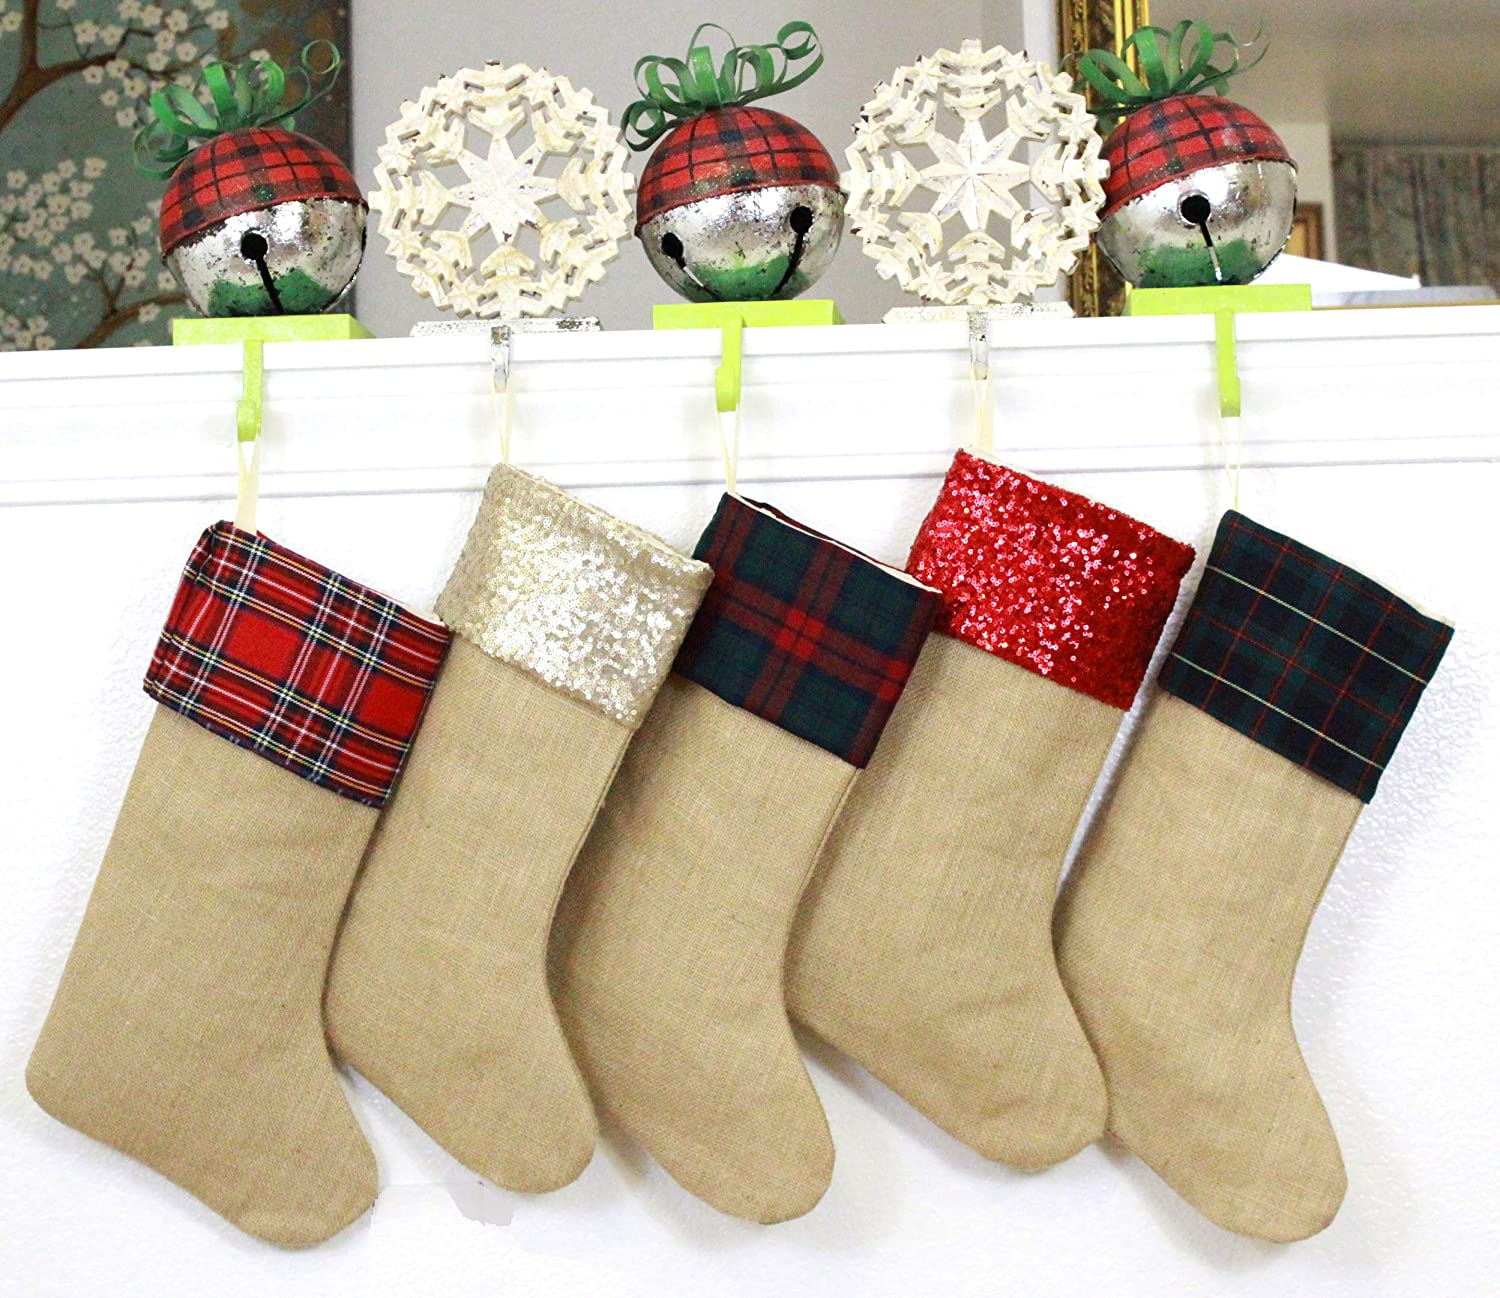 8b5108aba TheButterflyDecorator - Family Christmas Stockings Set of 5 - Made of  Plaids